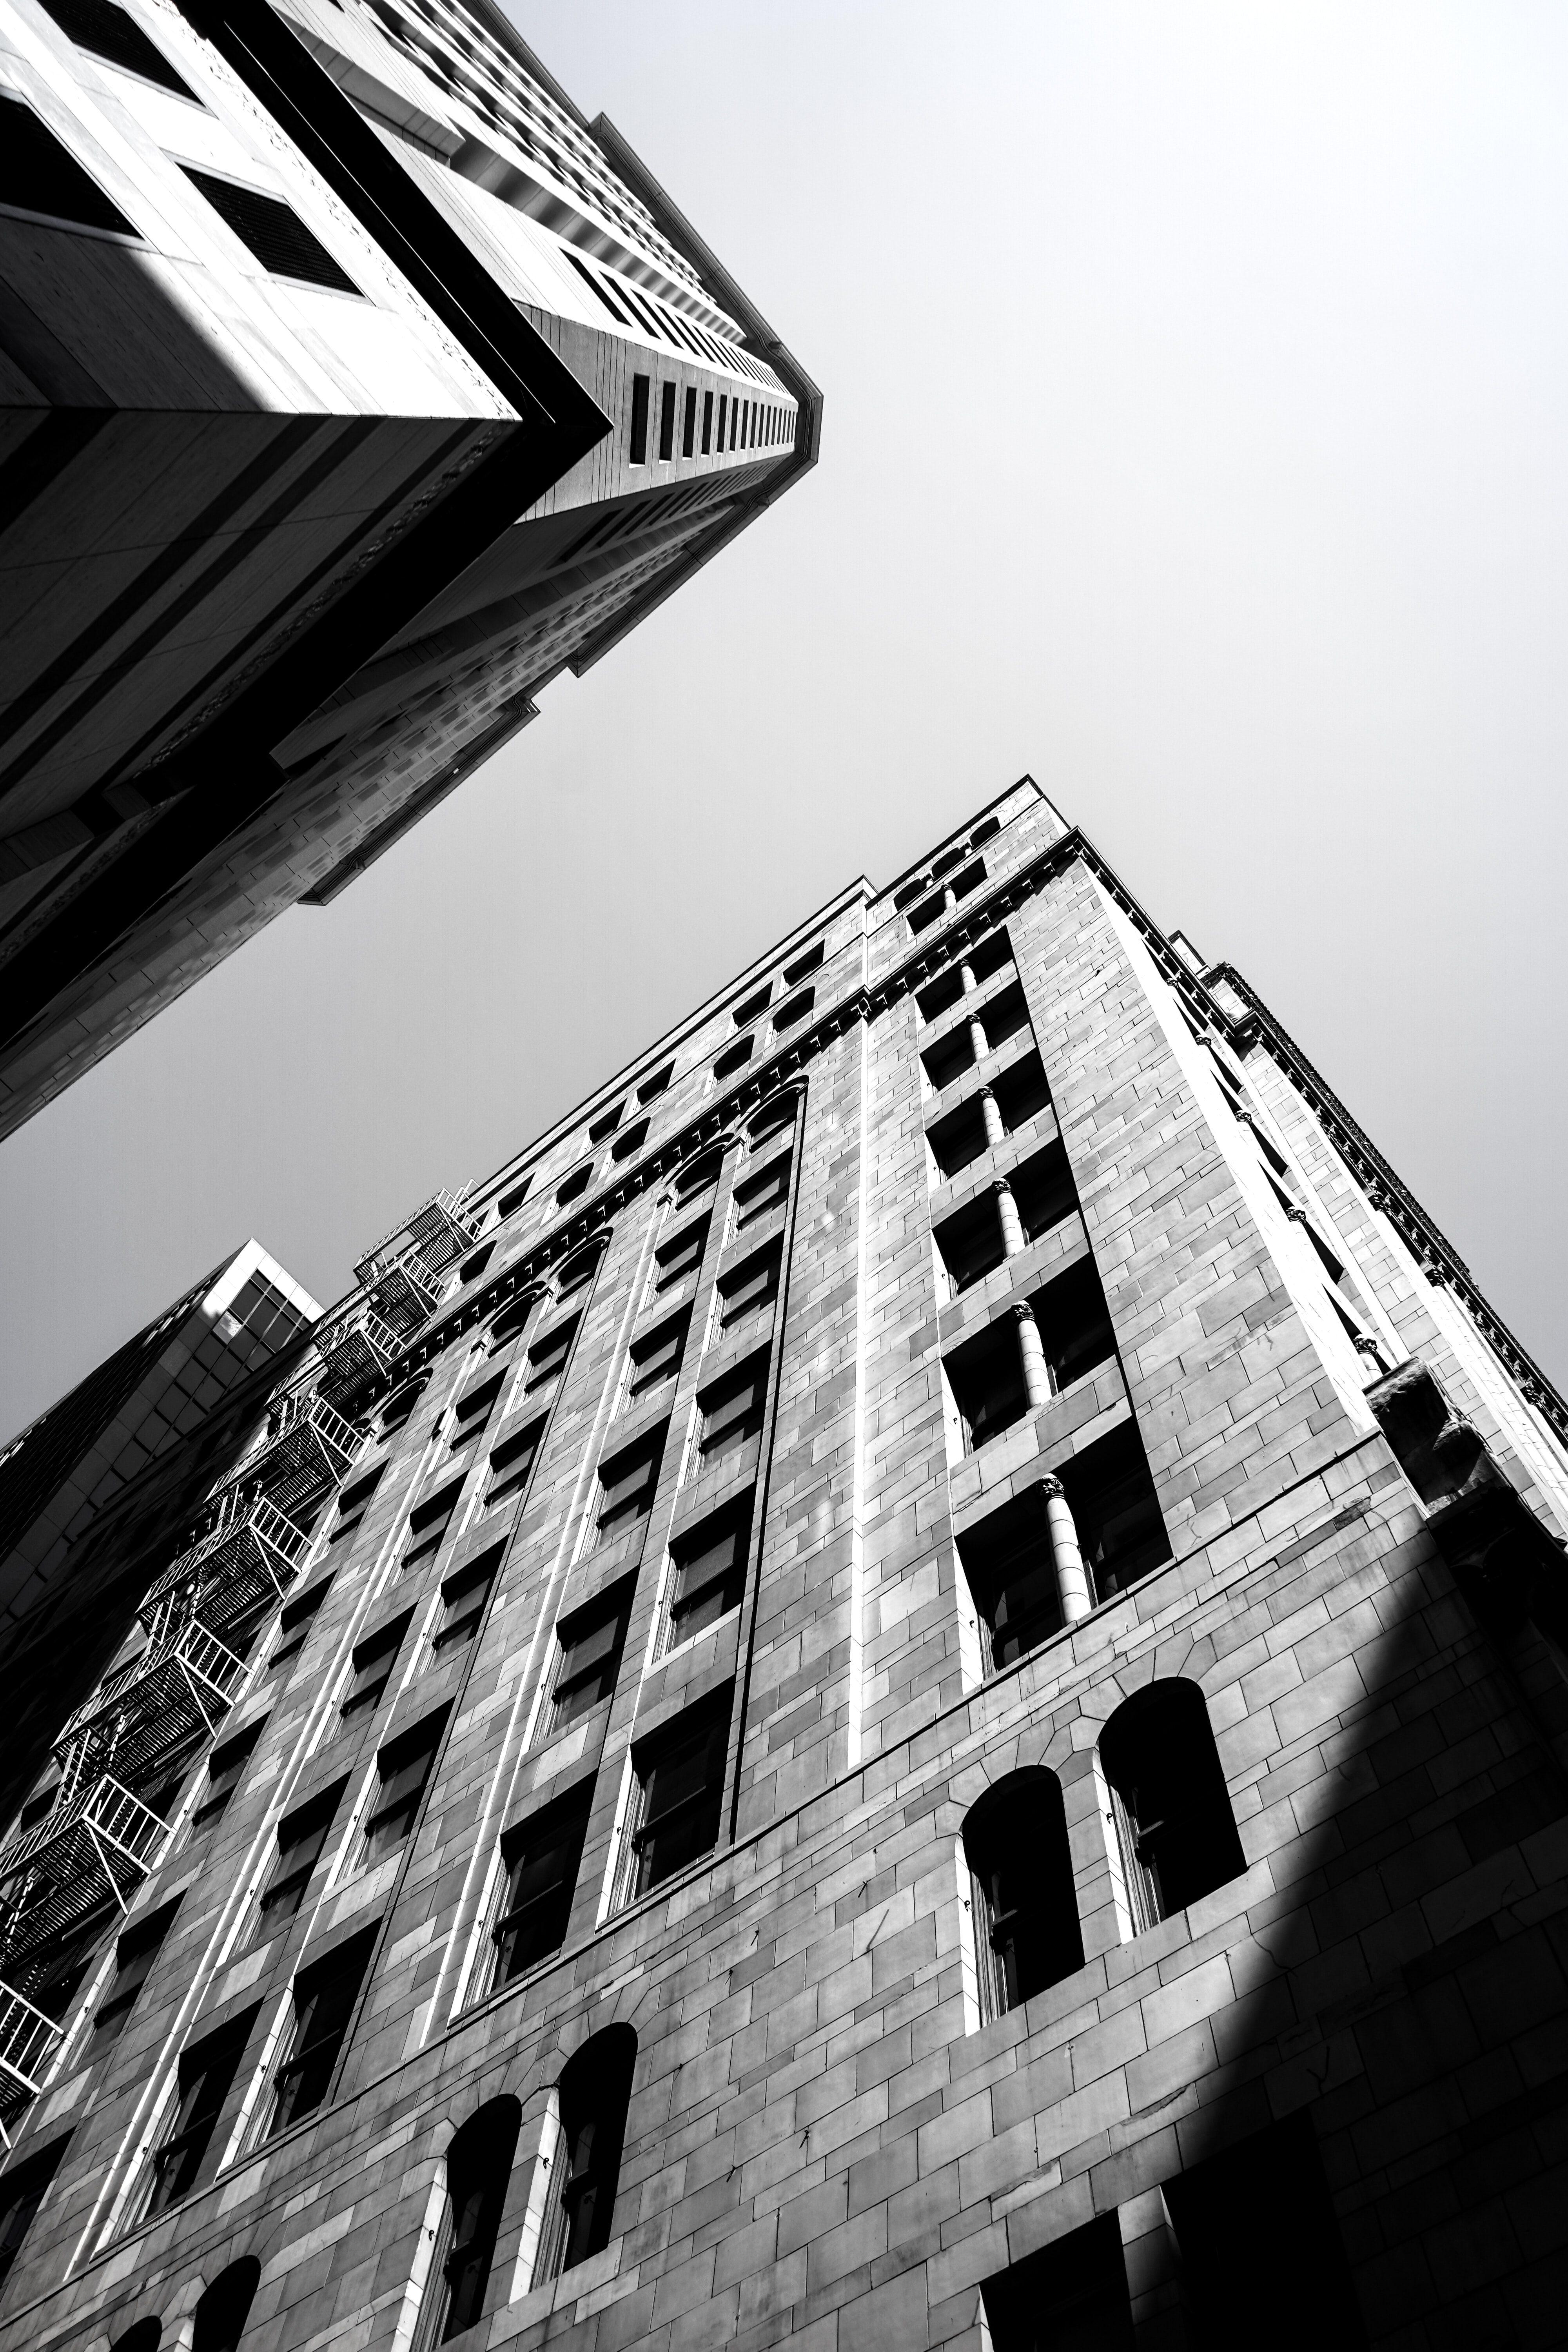 worm eye view of building